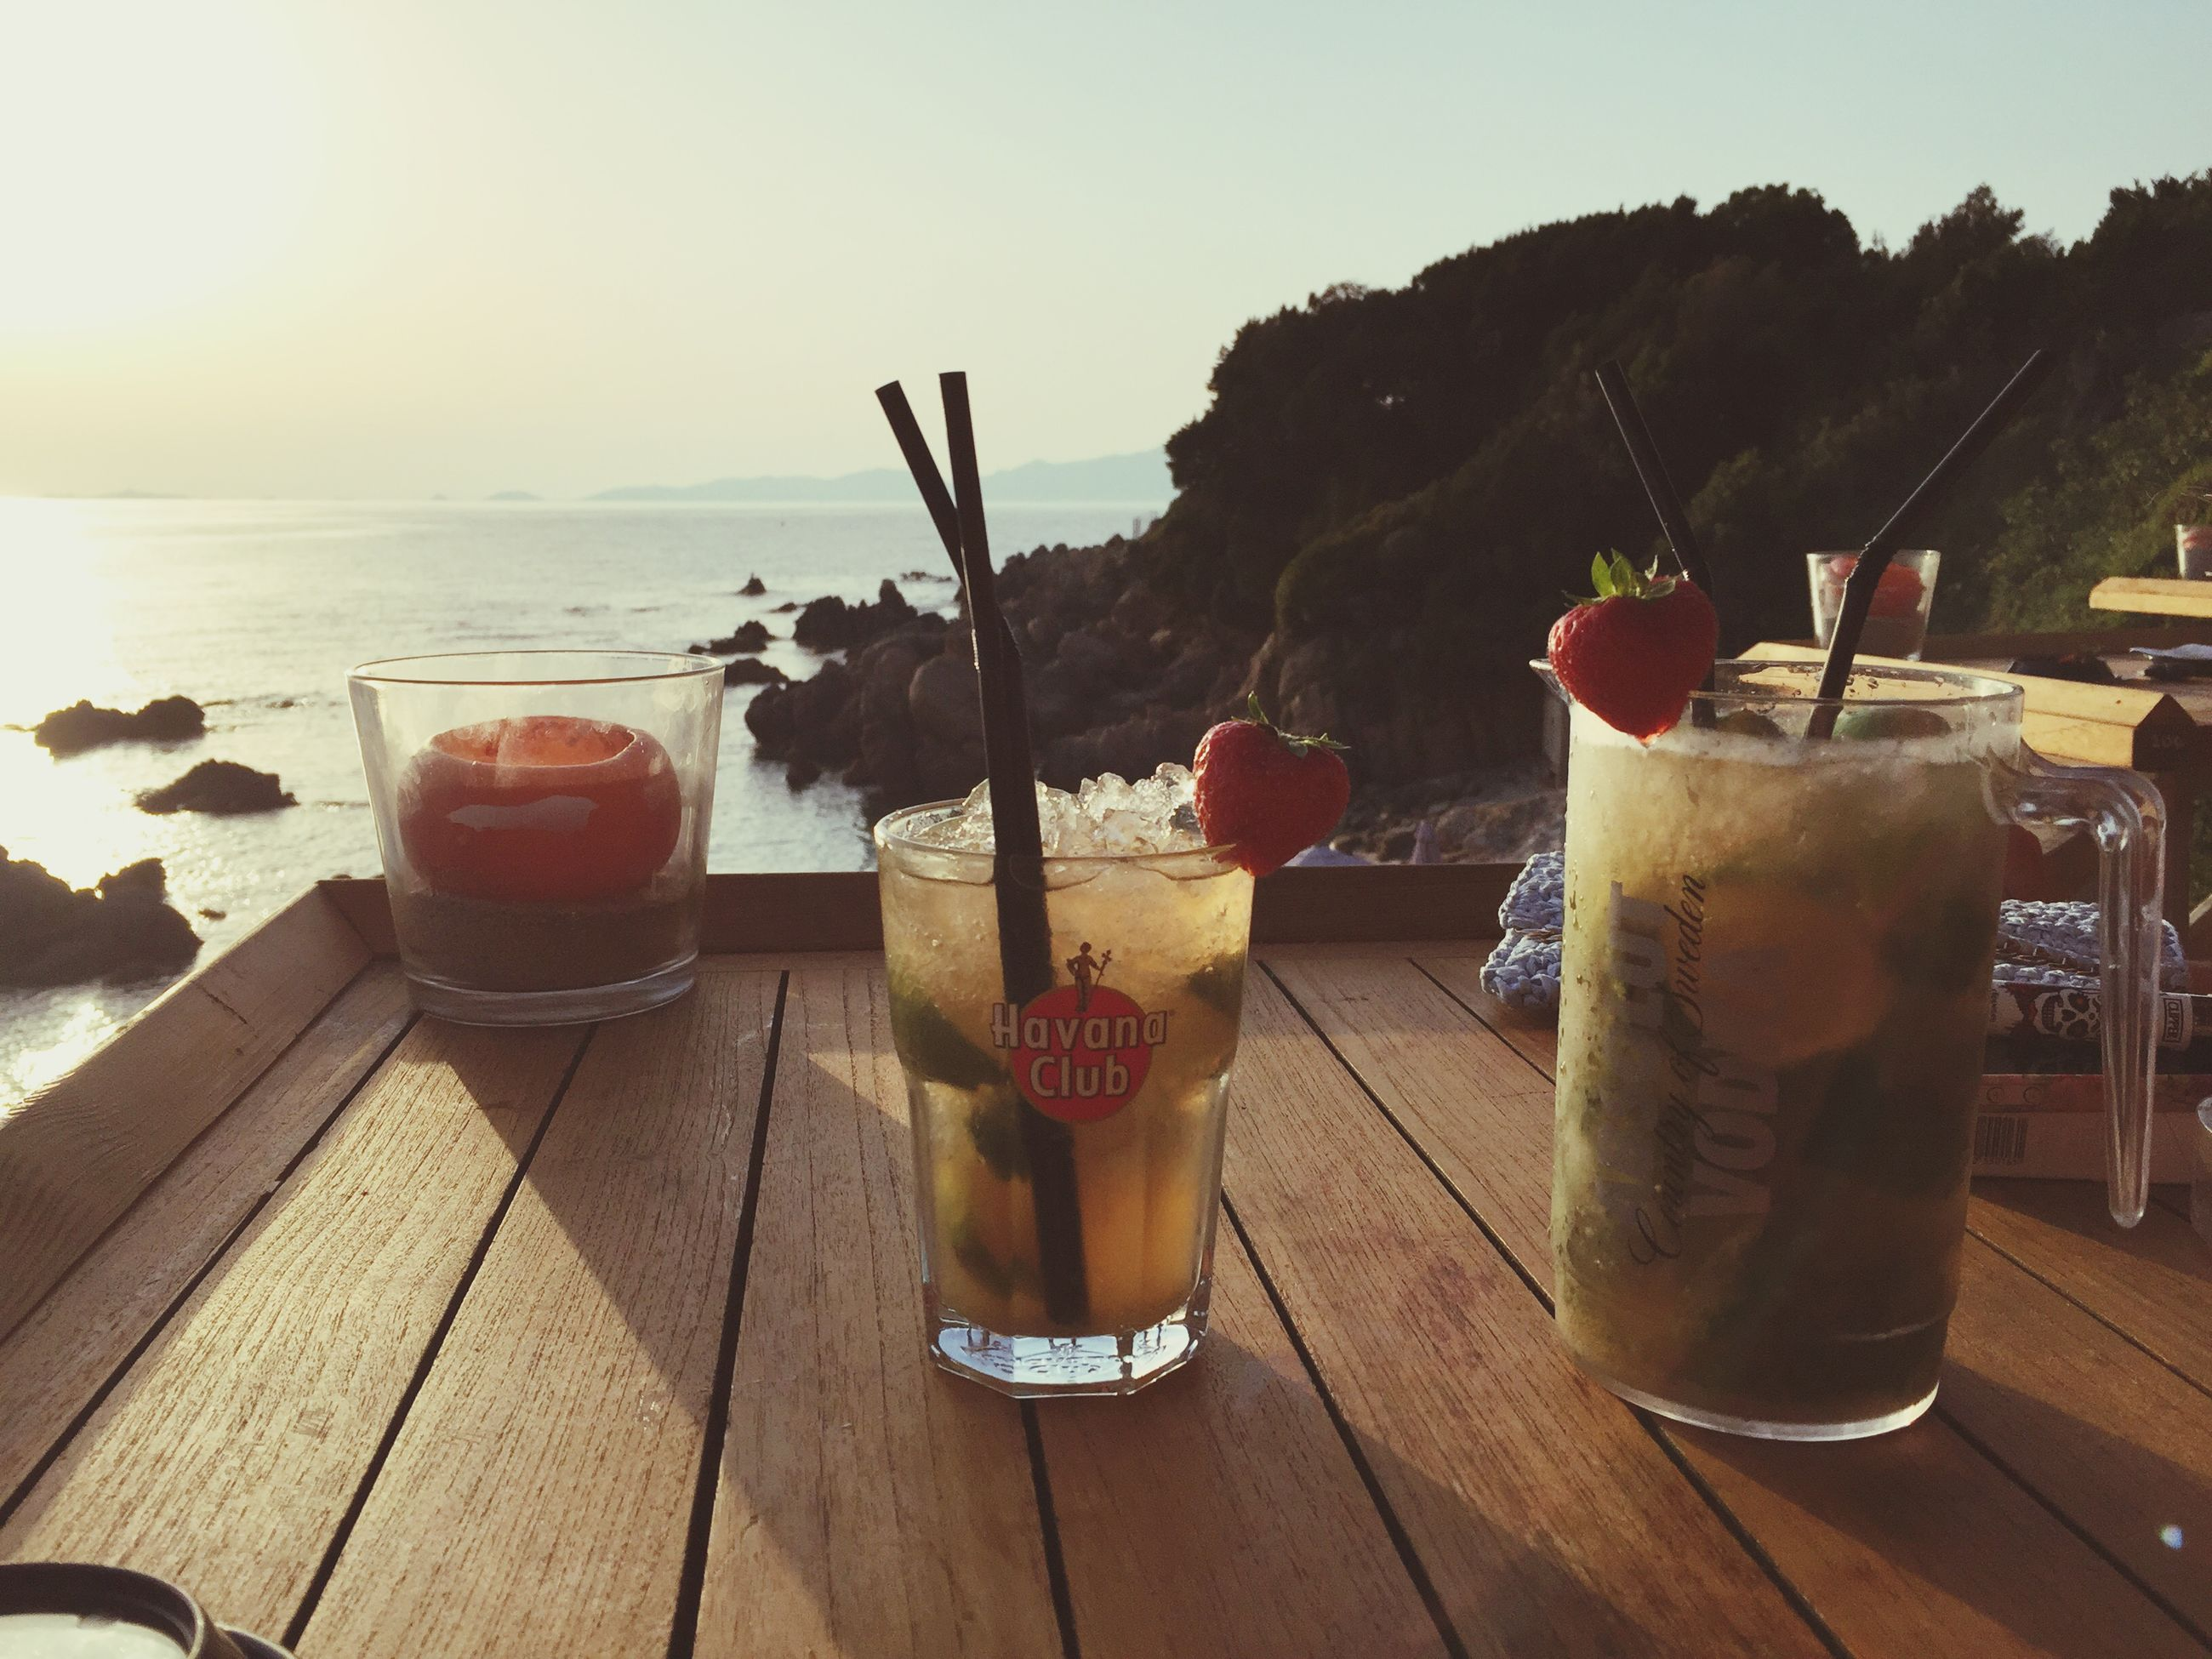 drink, table, freshness, food and drink, refreshment, drinking glass, flower, close-up, still life, drinking straw, focus on foreground, water, potted plant, sunlight, indoors, sea, restaurant, alcohol, vase, beauty in nature